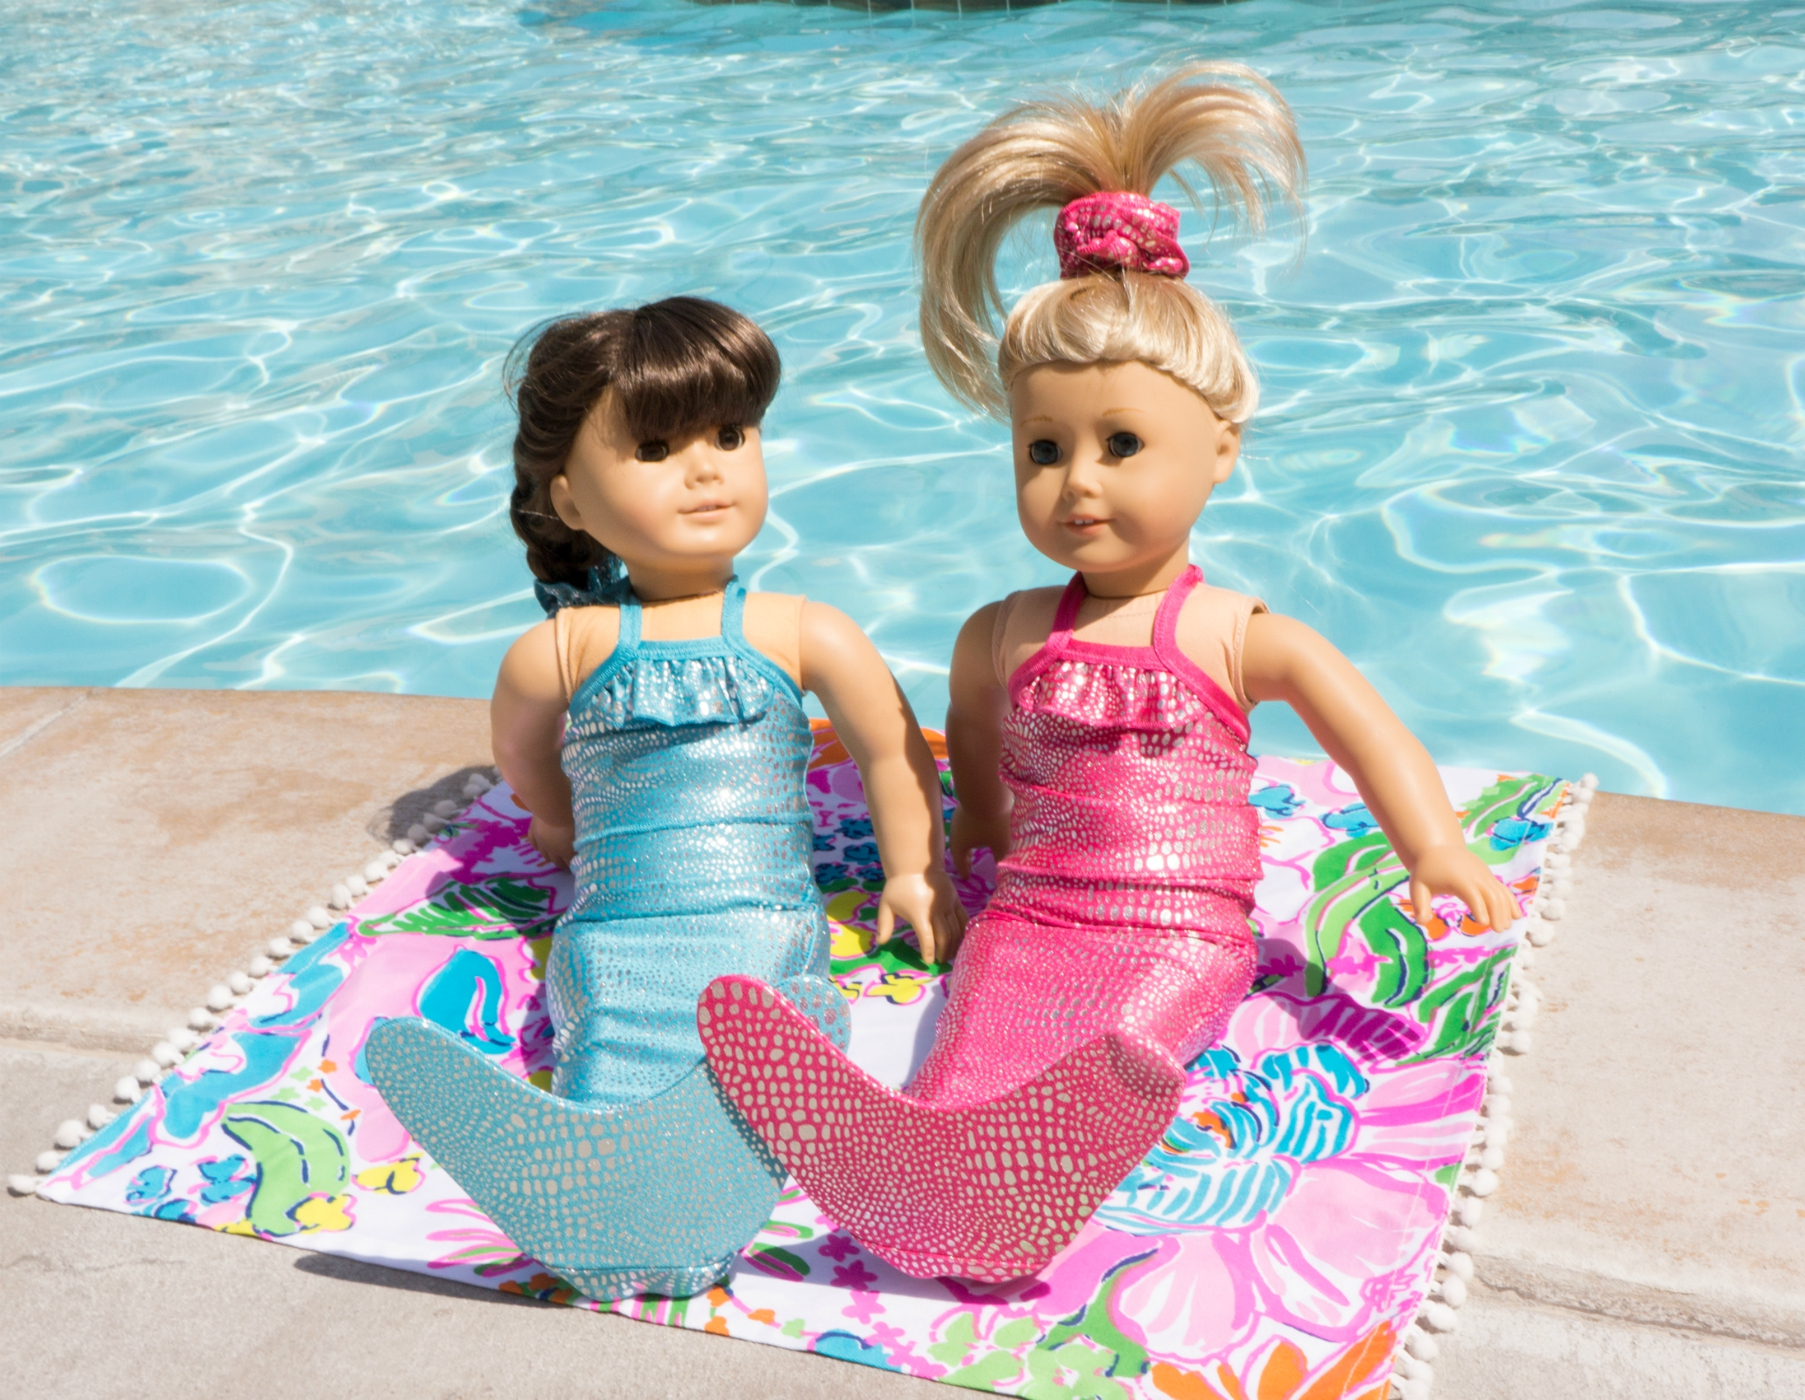 American Girl Doll outfits from Shimmer Tail Mermaid